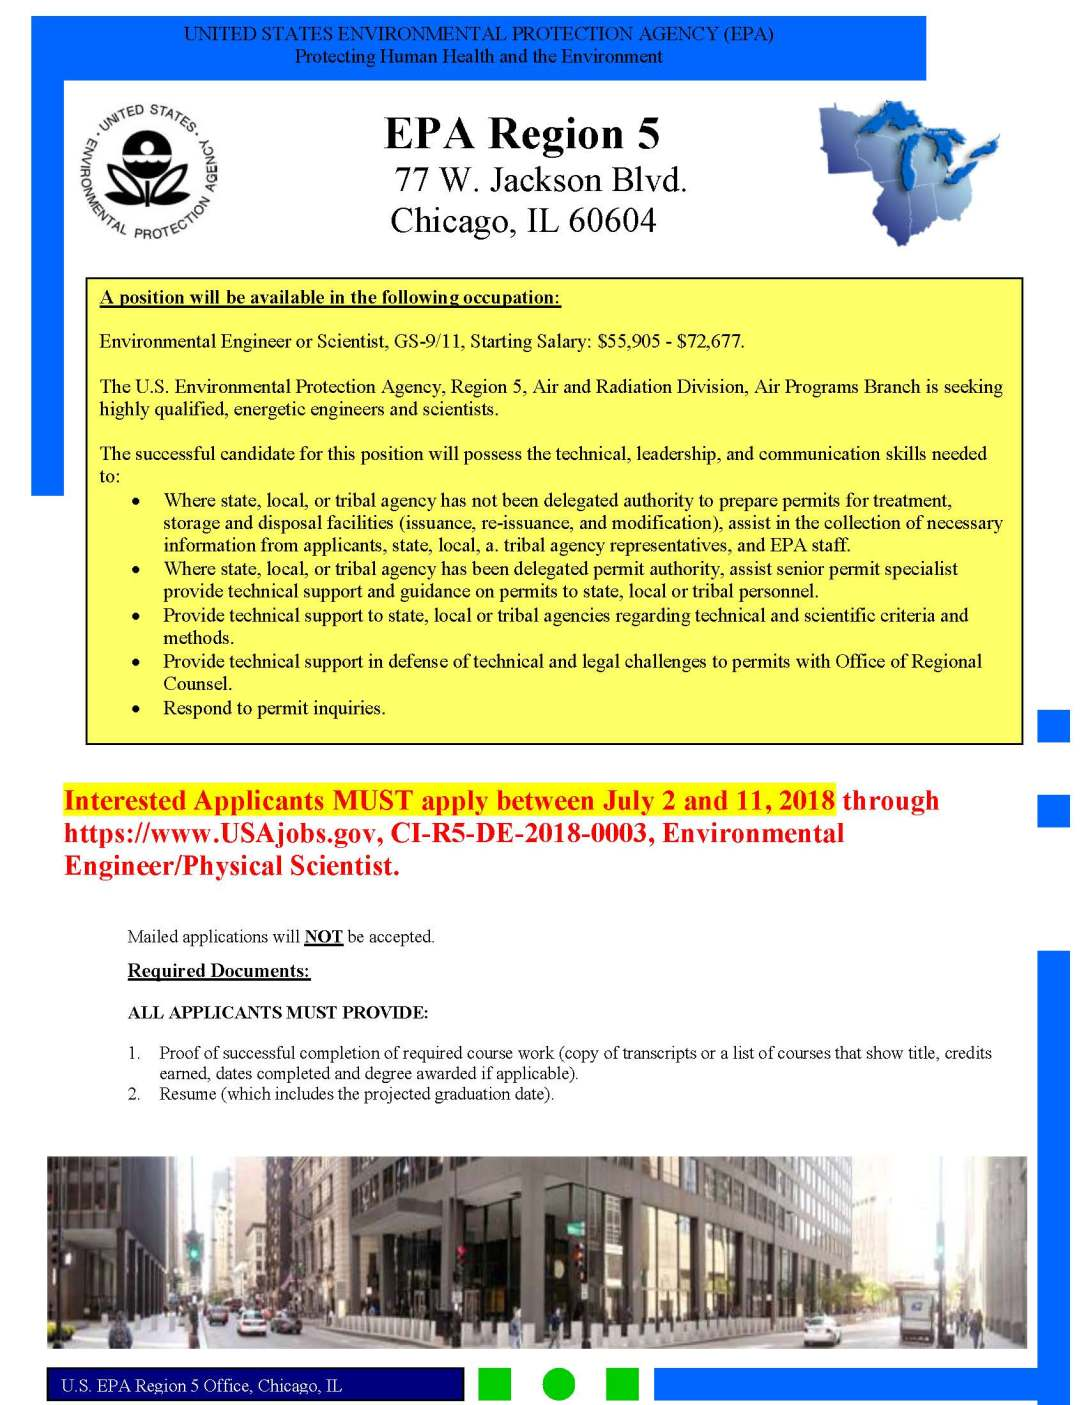 EPA Full-Time July 2-11 Only (002)_Page_1